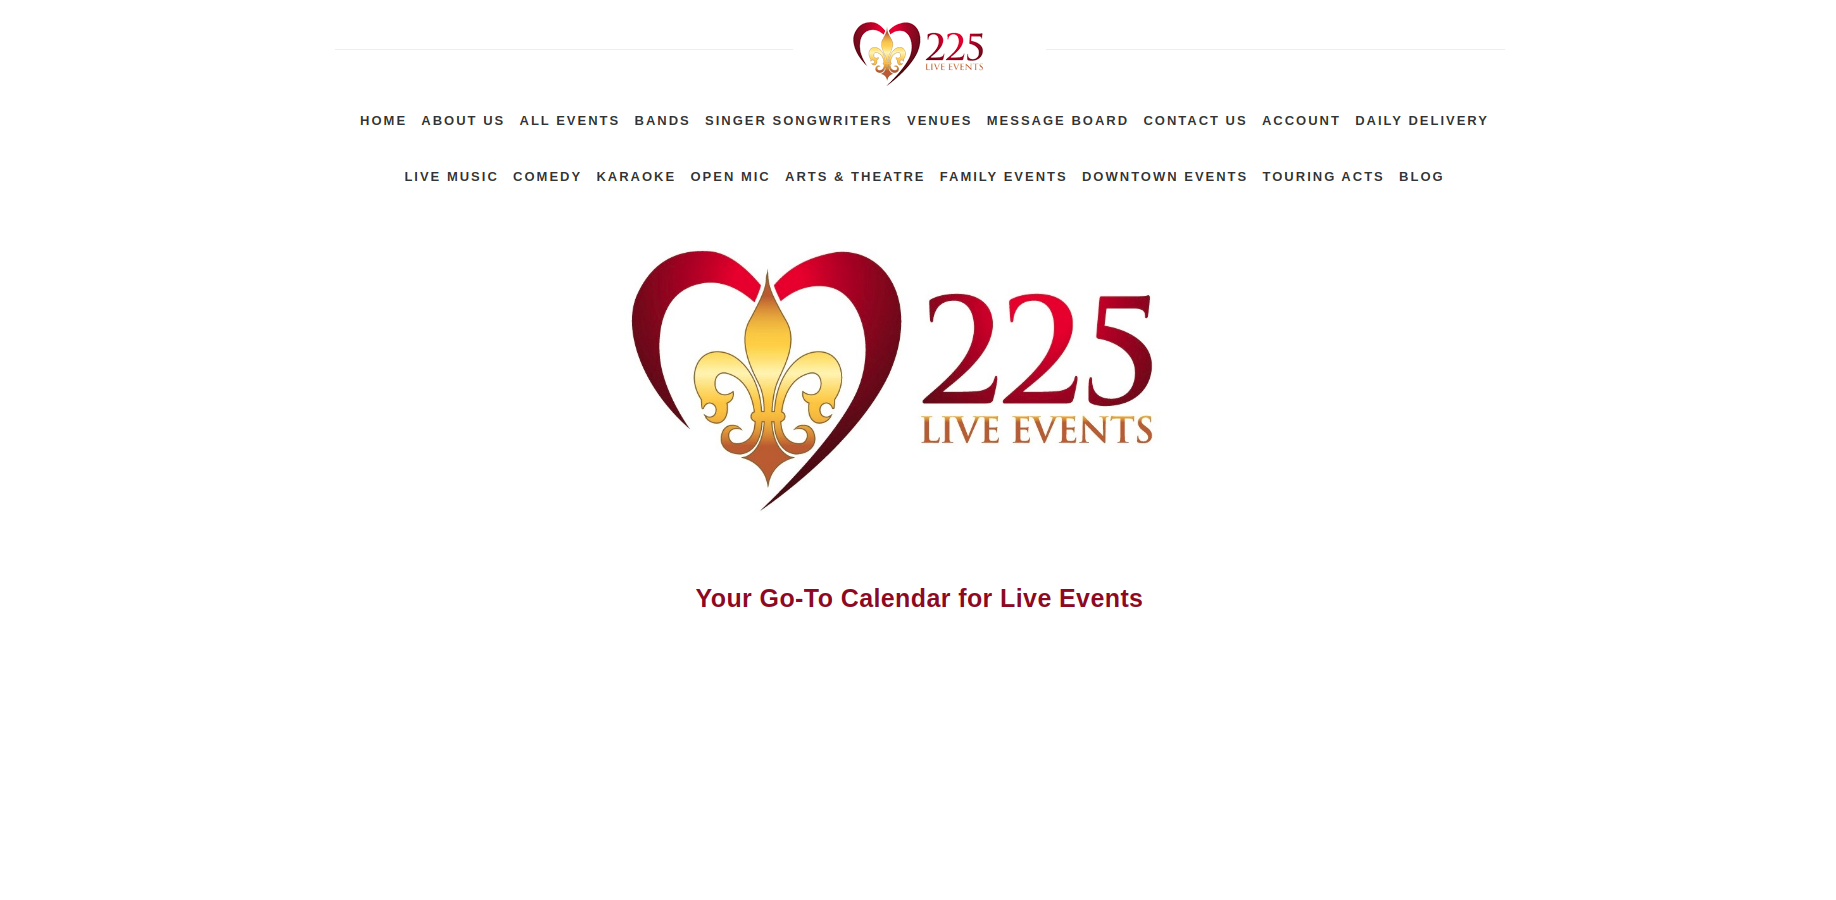 225 Live Events